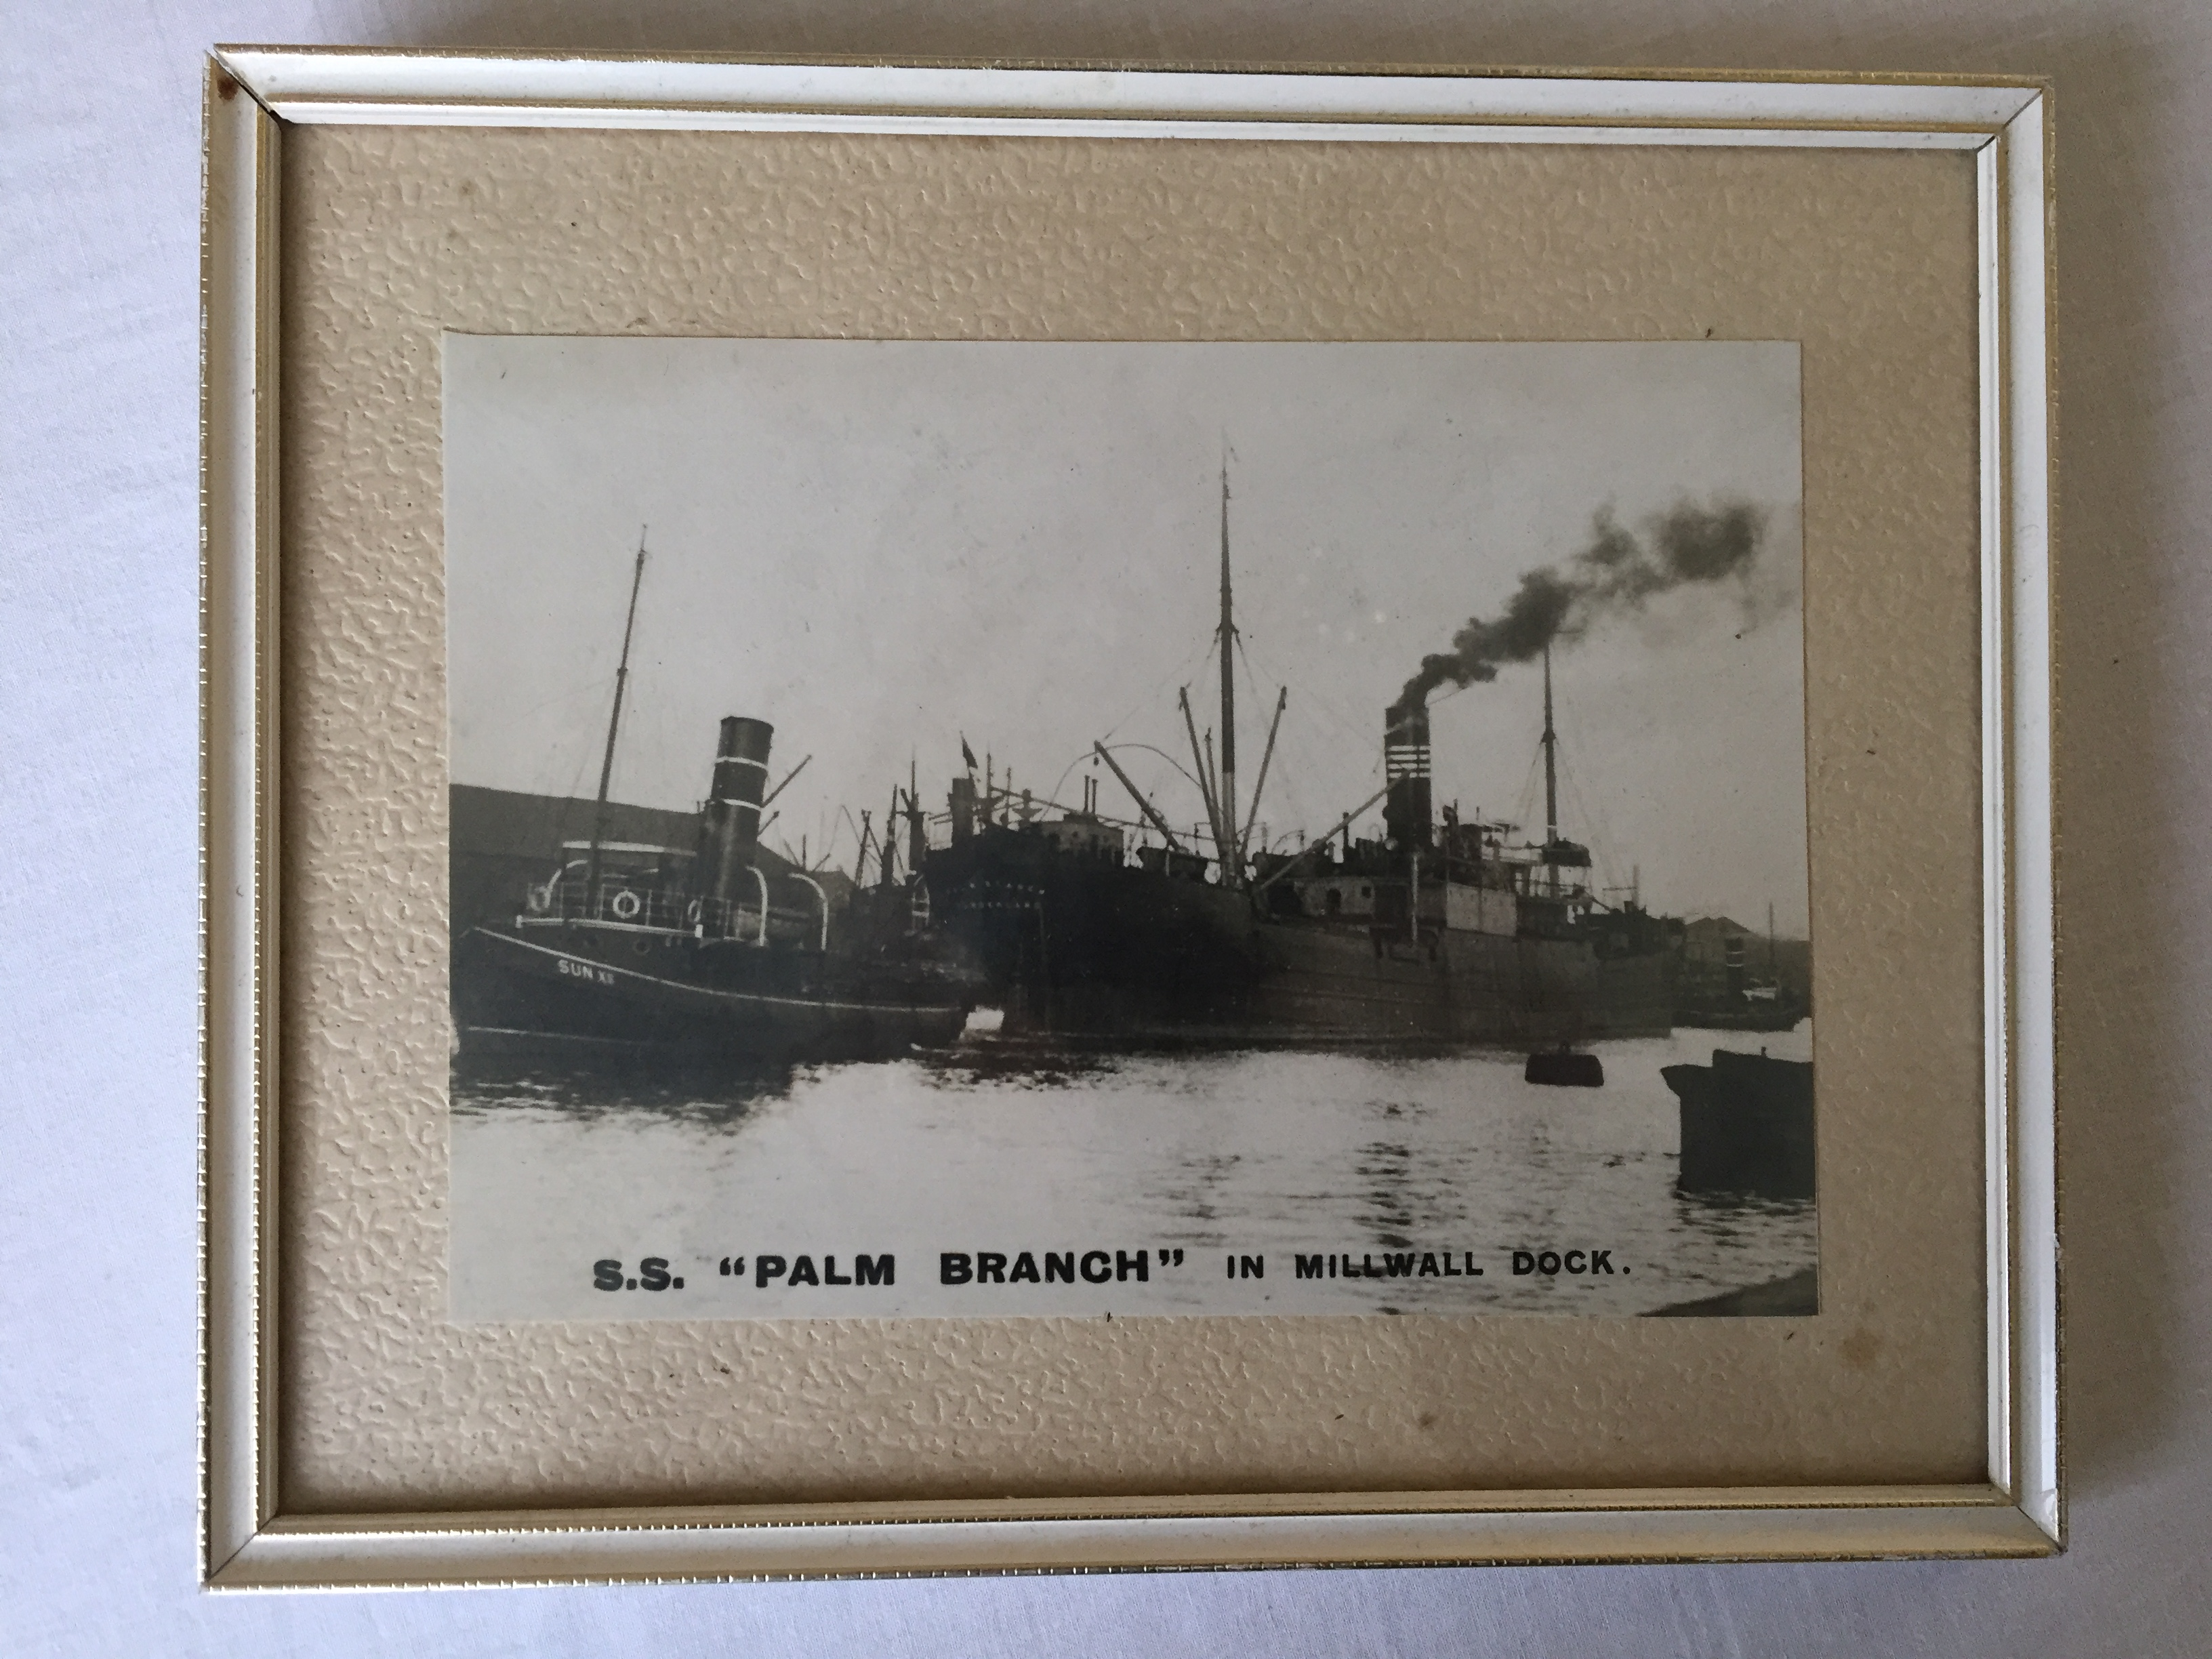 ORIGINAL OLD B/W FRAMED PHOTOGRAPH TAKEN BY THE OLD LIGHTER MAN FRED SMALL OF THE VESSEL THE SS PALM BEACH